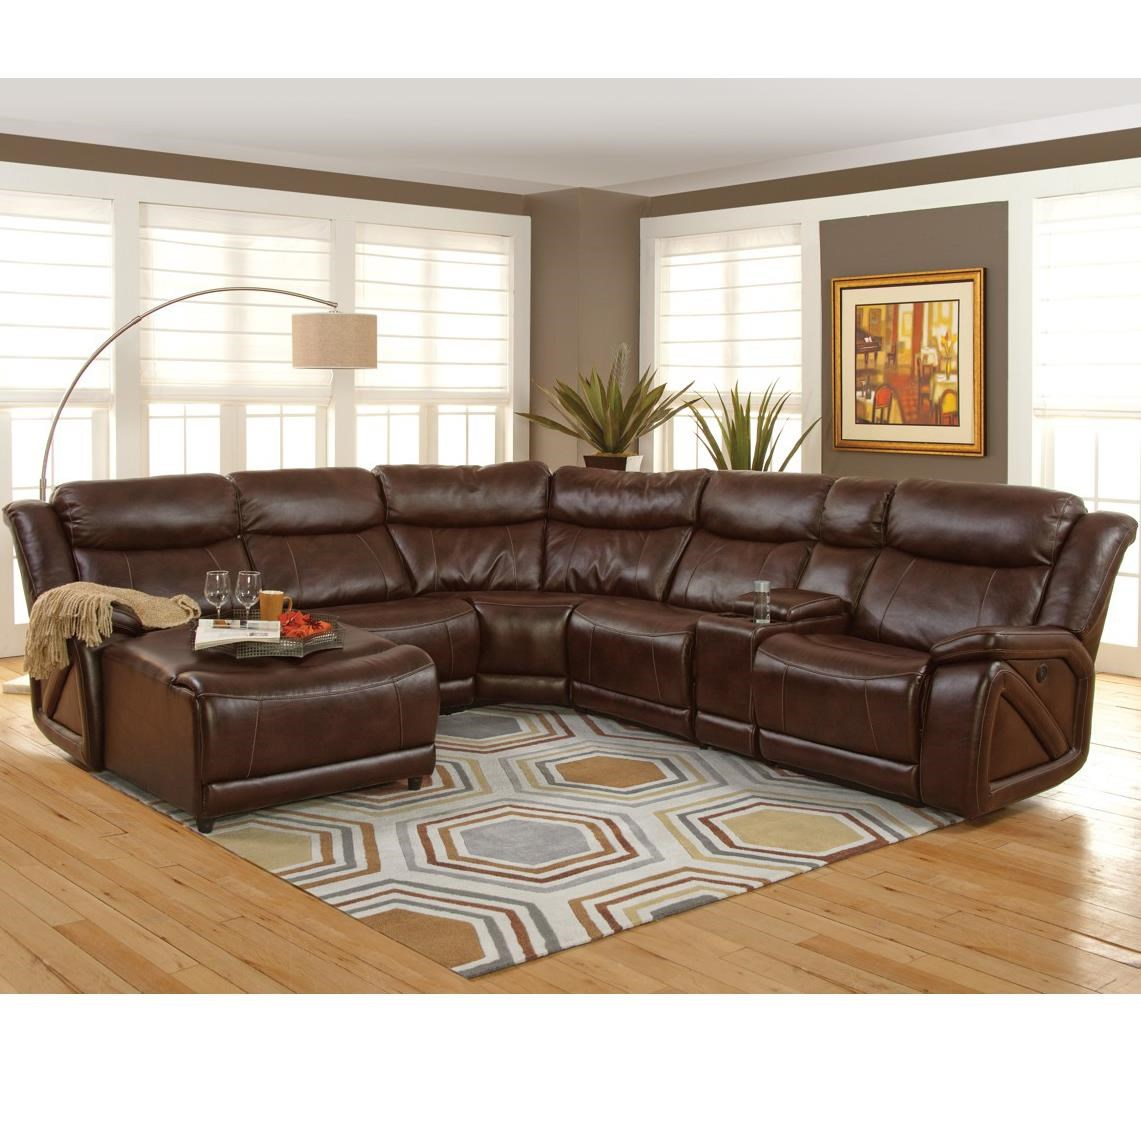 New Classic Park PlaceCasual Sectional